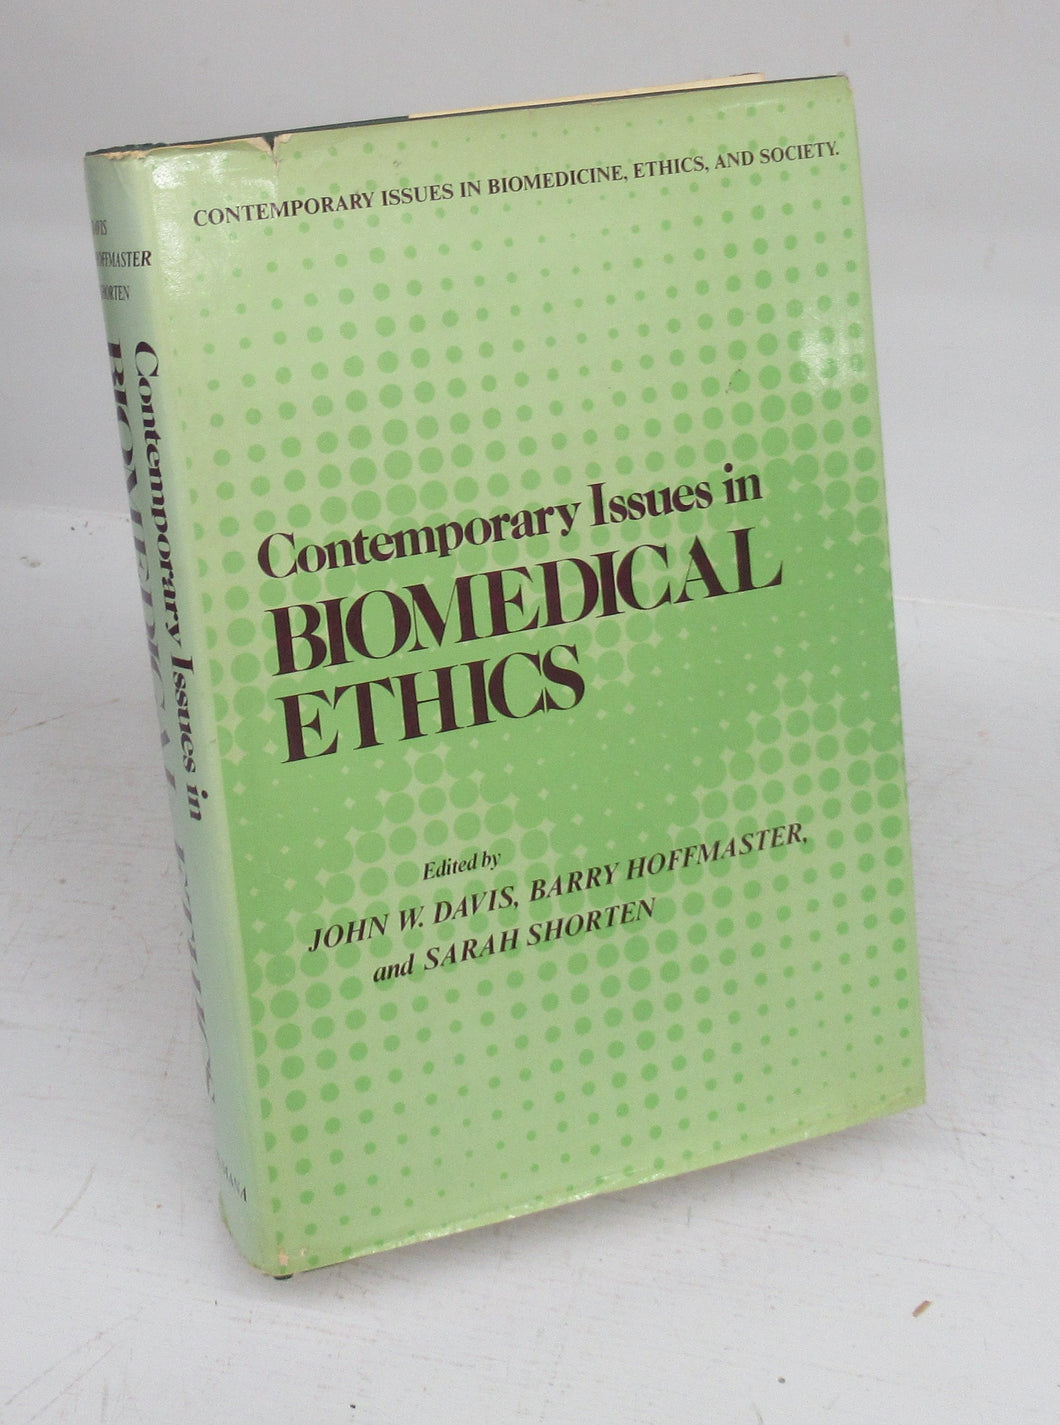 Contemporary Issues in Biomedical Ethics